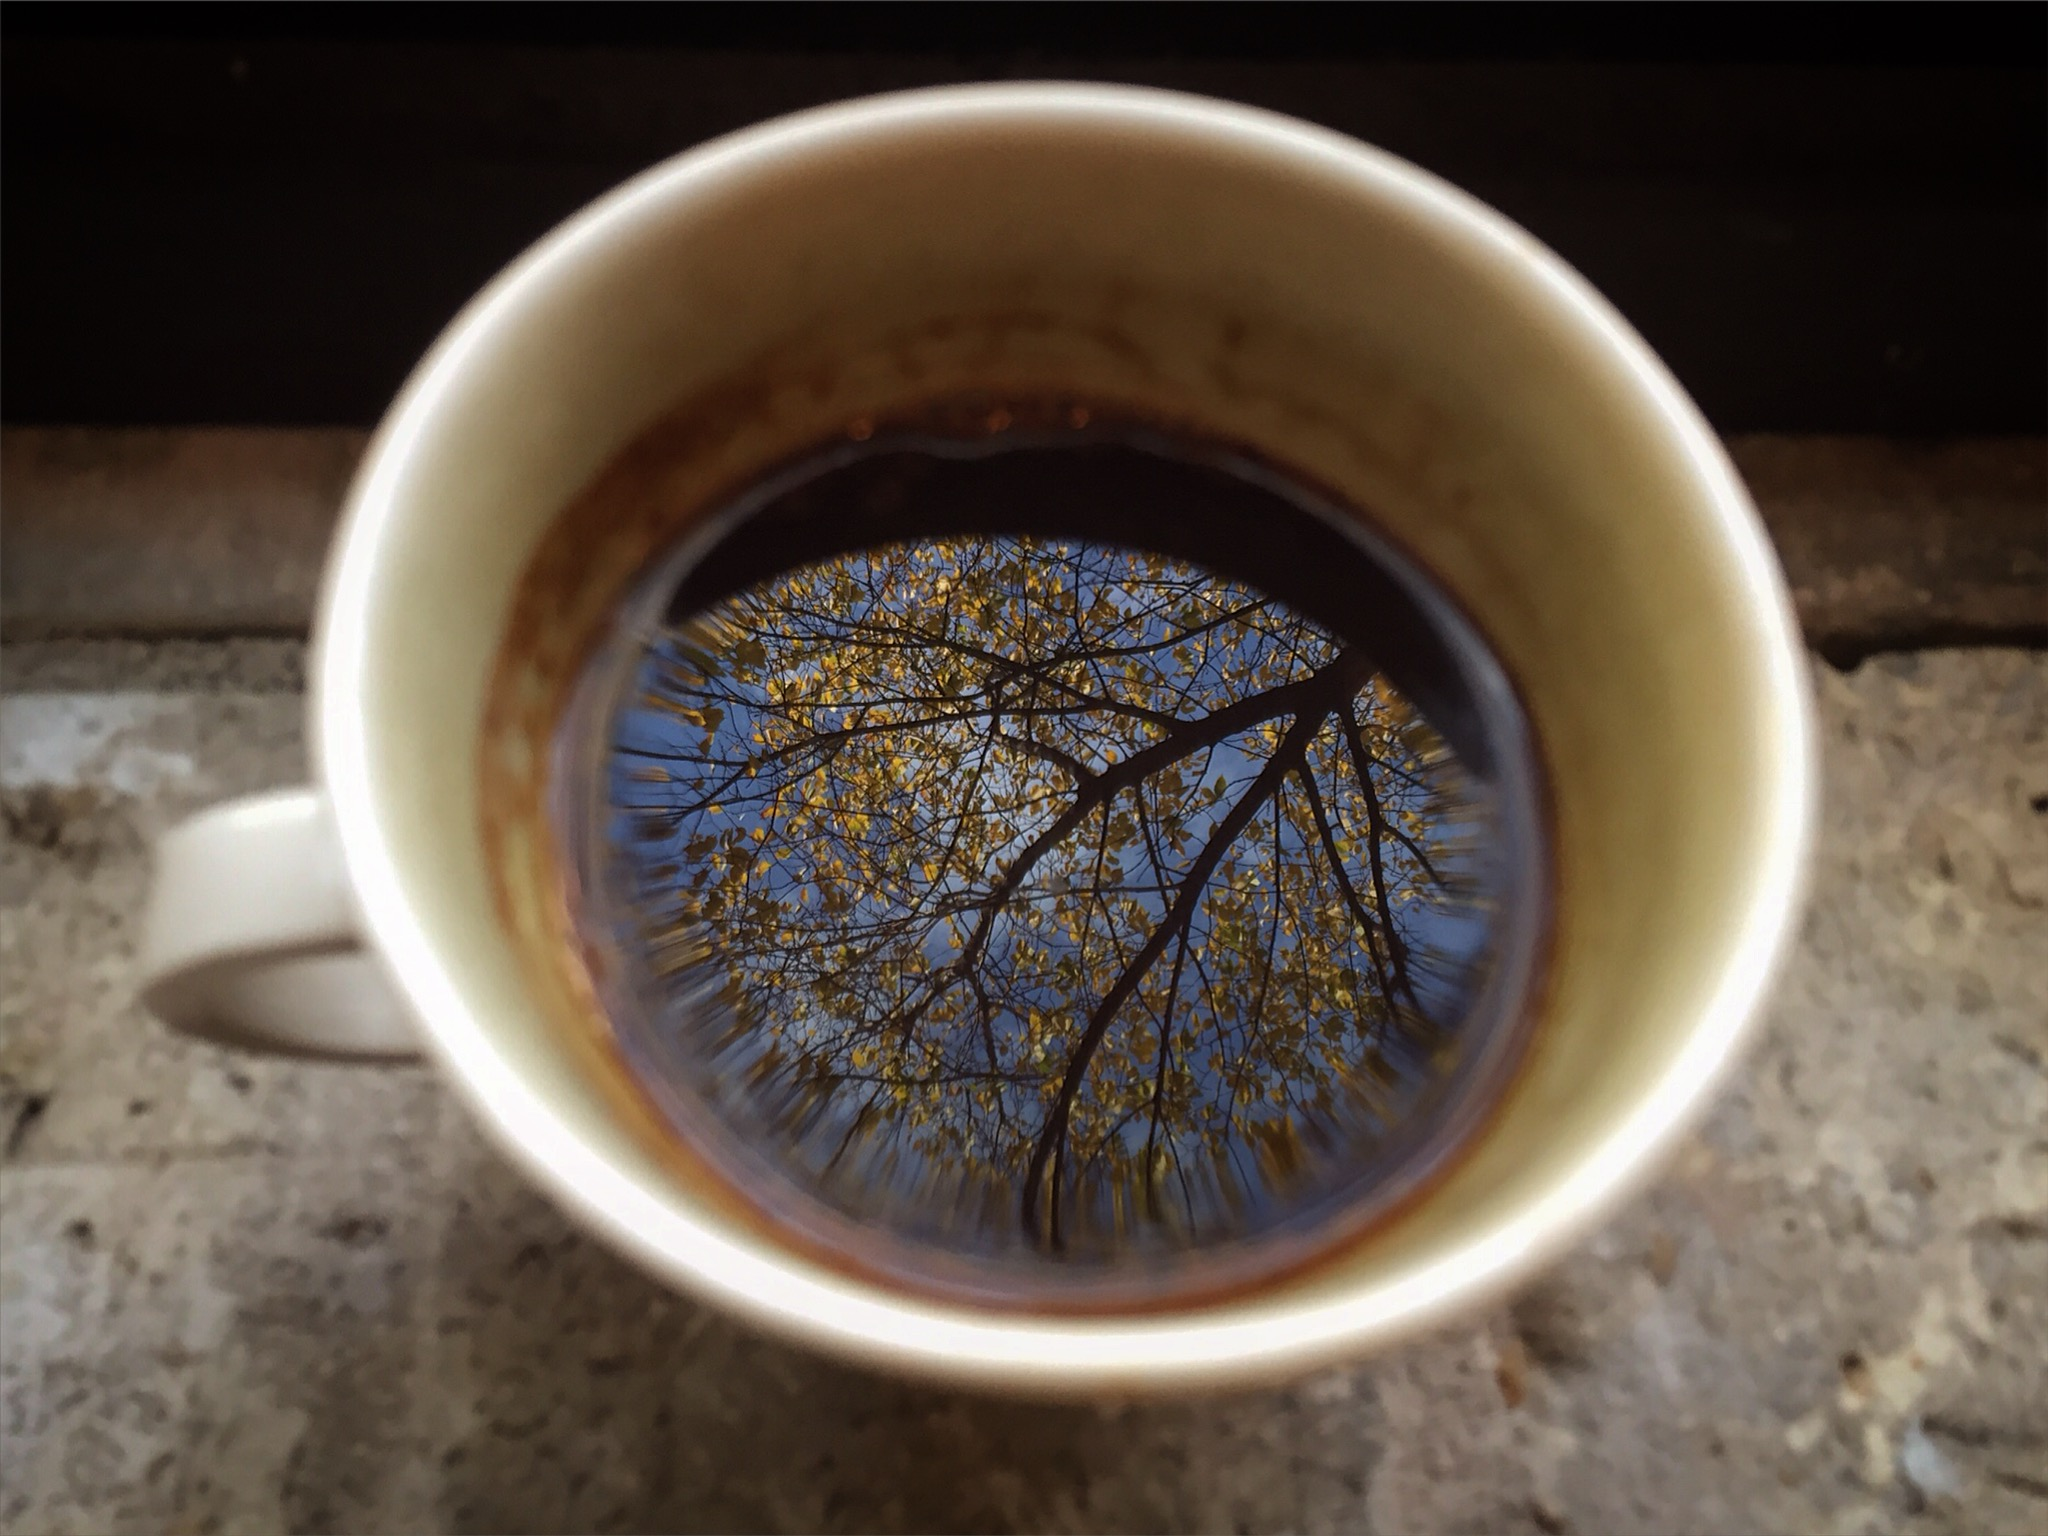 Nothing beats a warm cup of coffee on a cool autumn morning. (shot on iphone)